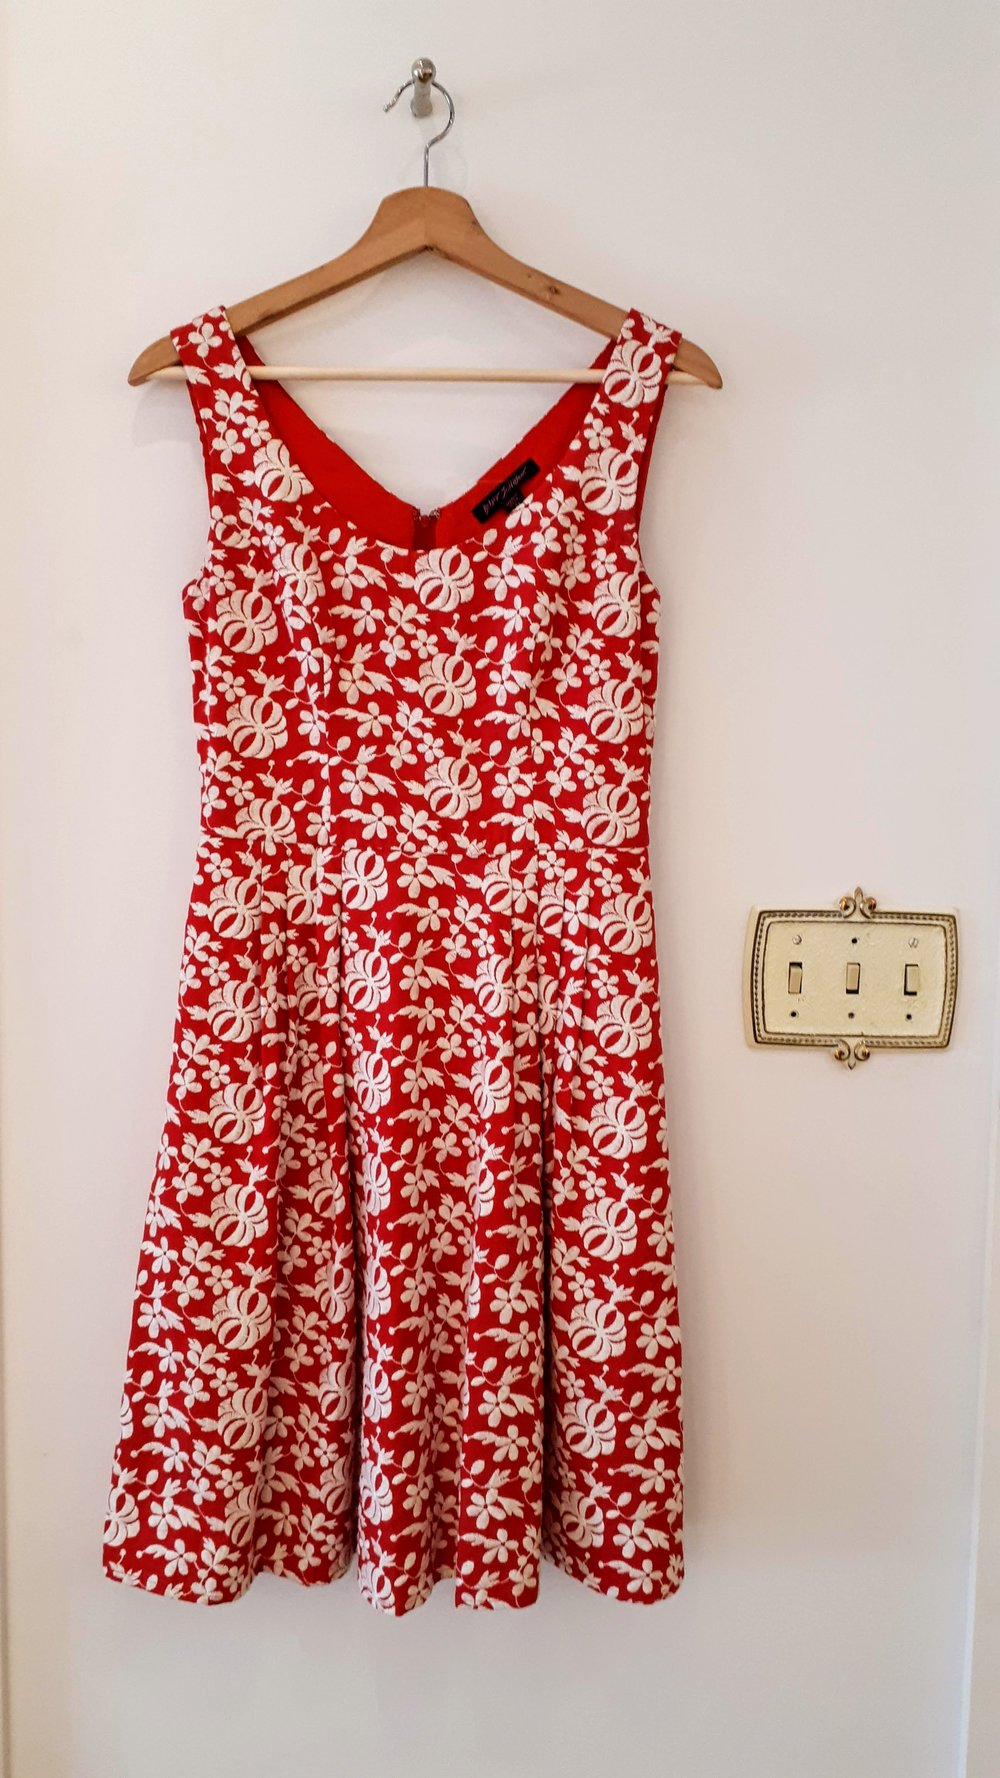 Betsey Johnson dress; Size 4, $62 (On sale for $31)